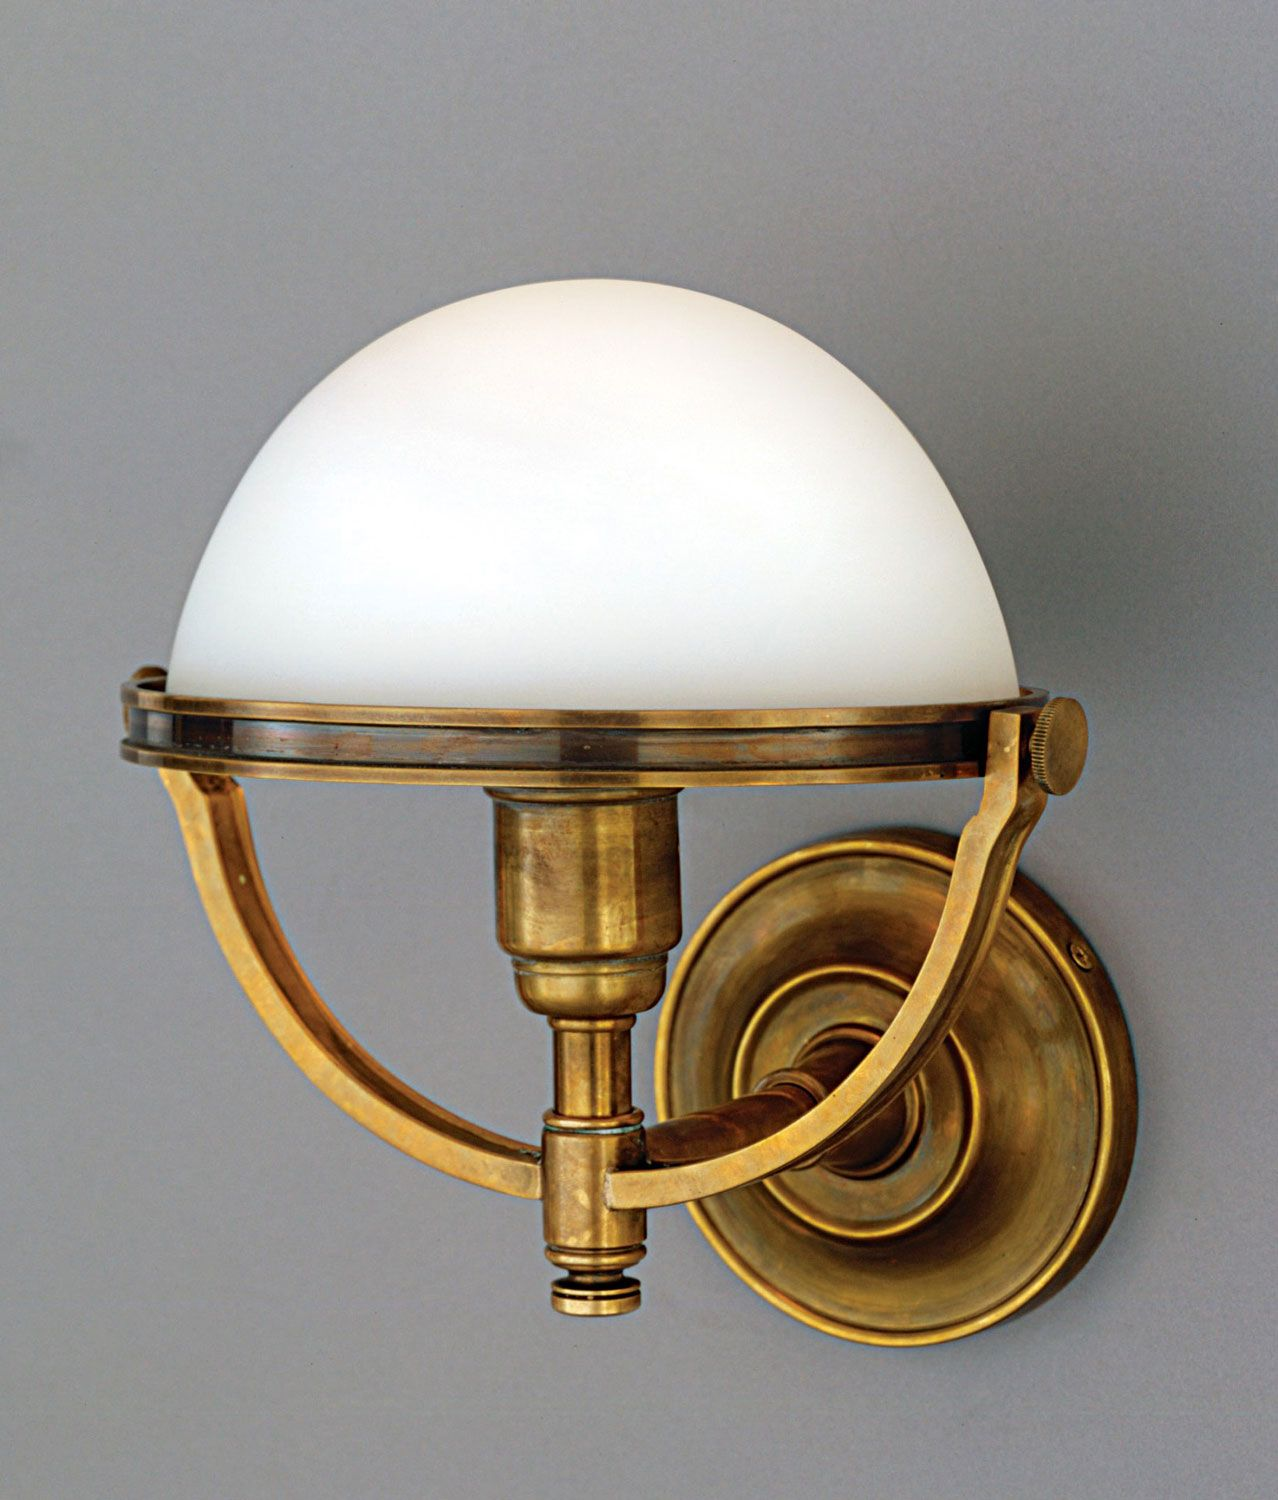 One Light Wall Sconce Brass Wall Sconce Vintage Inspired Sconce